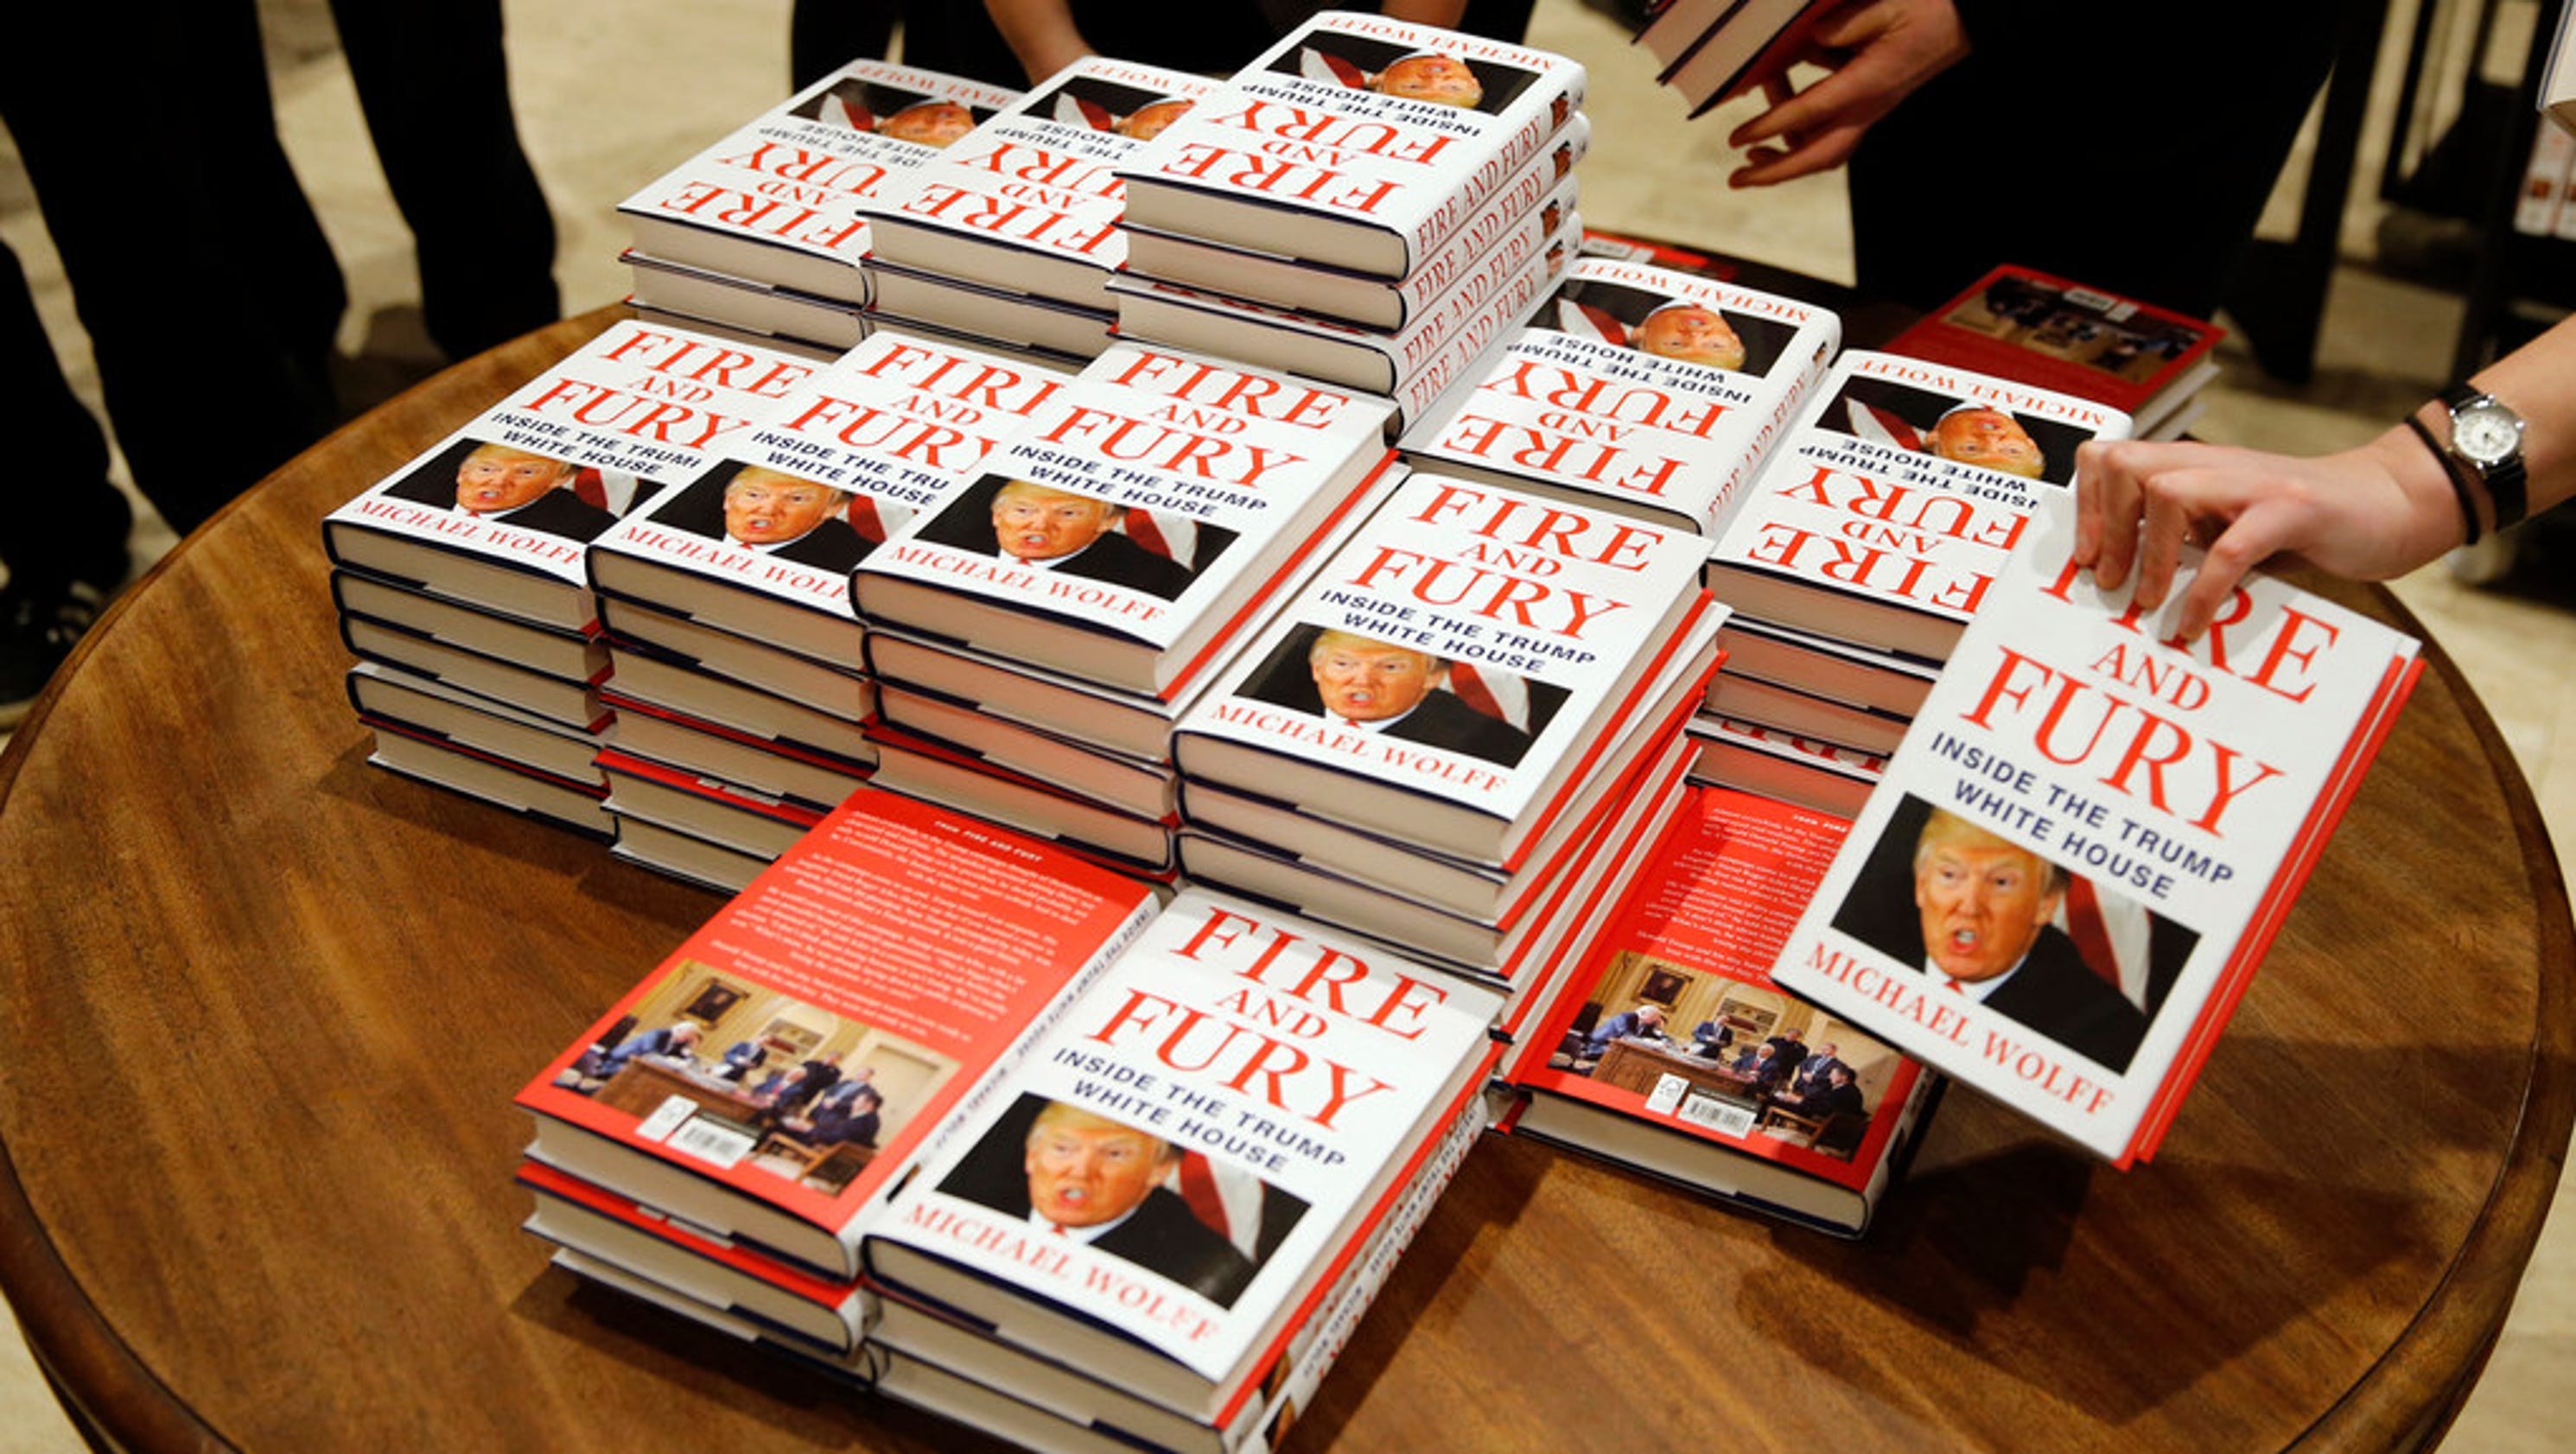 Michael wolffs fire and fury inside the trump white house michael wolffs fire and fury inside the trump white house reaches north korea biocorpaavc